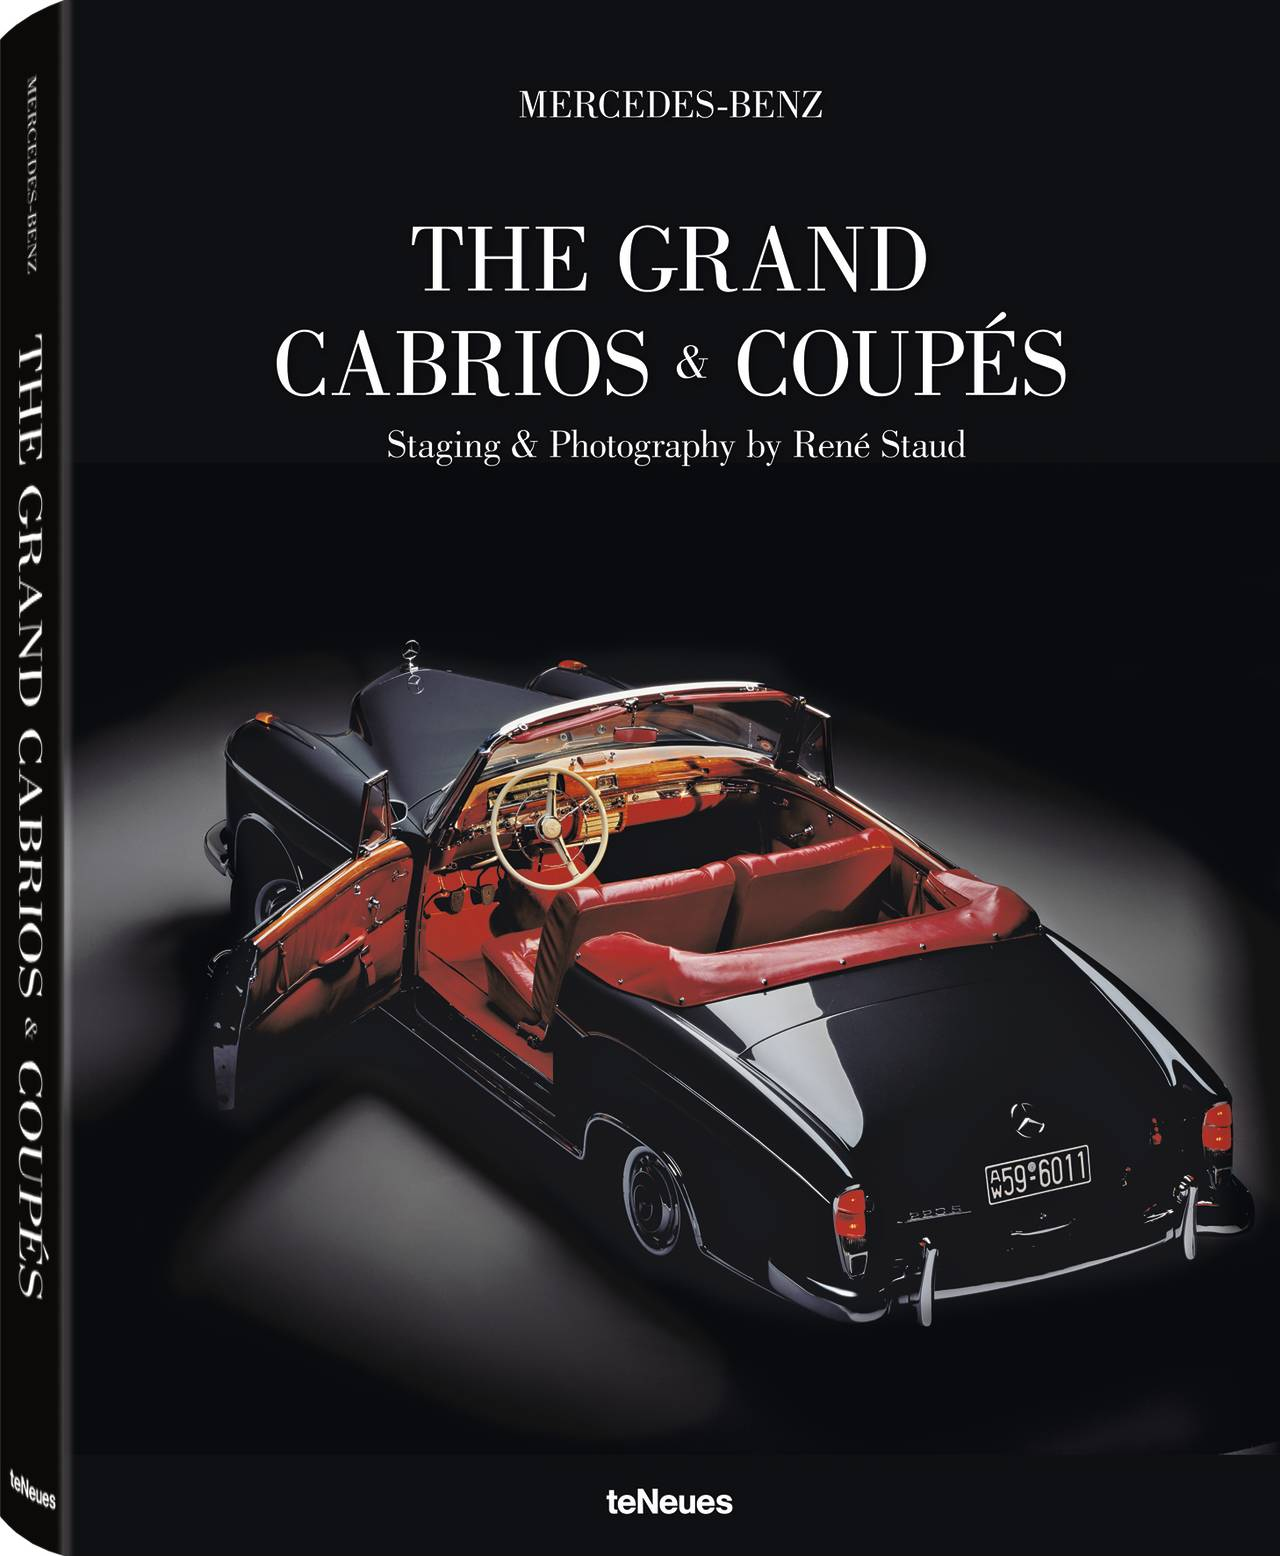 © Mercedes-Benz - The Grand Cabrios & Coupés, Staging & Photography by René Staud, published by teNeues, www.teneues.com. 220 S Cabriolet, 1956-1959, Photo © 2015 René Staud Studios GmbH, Leonberg, Germany. All rights reserved. www.renestaud.com